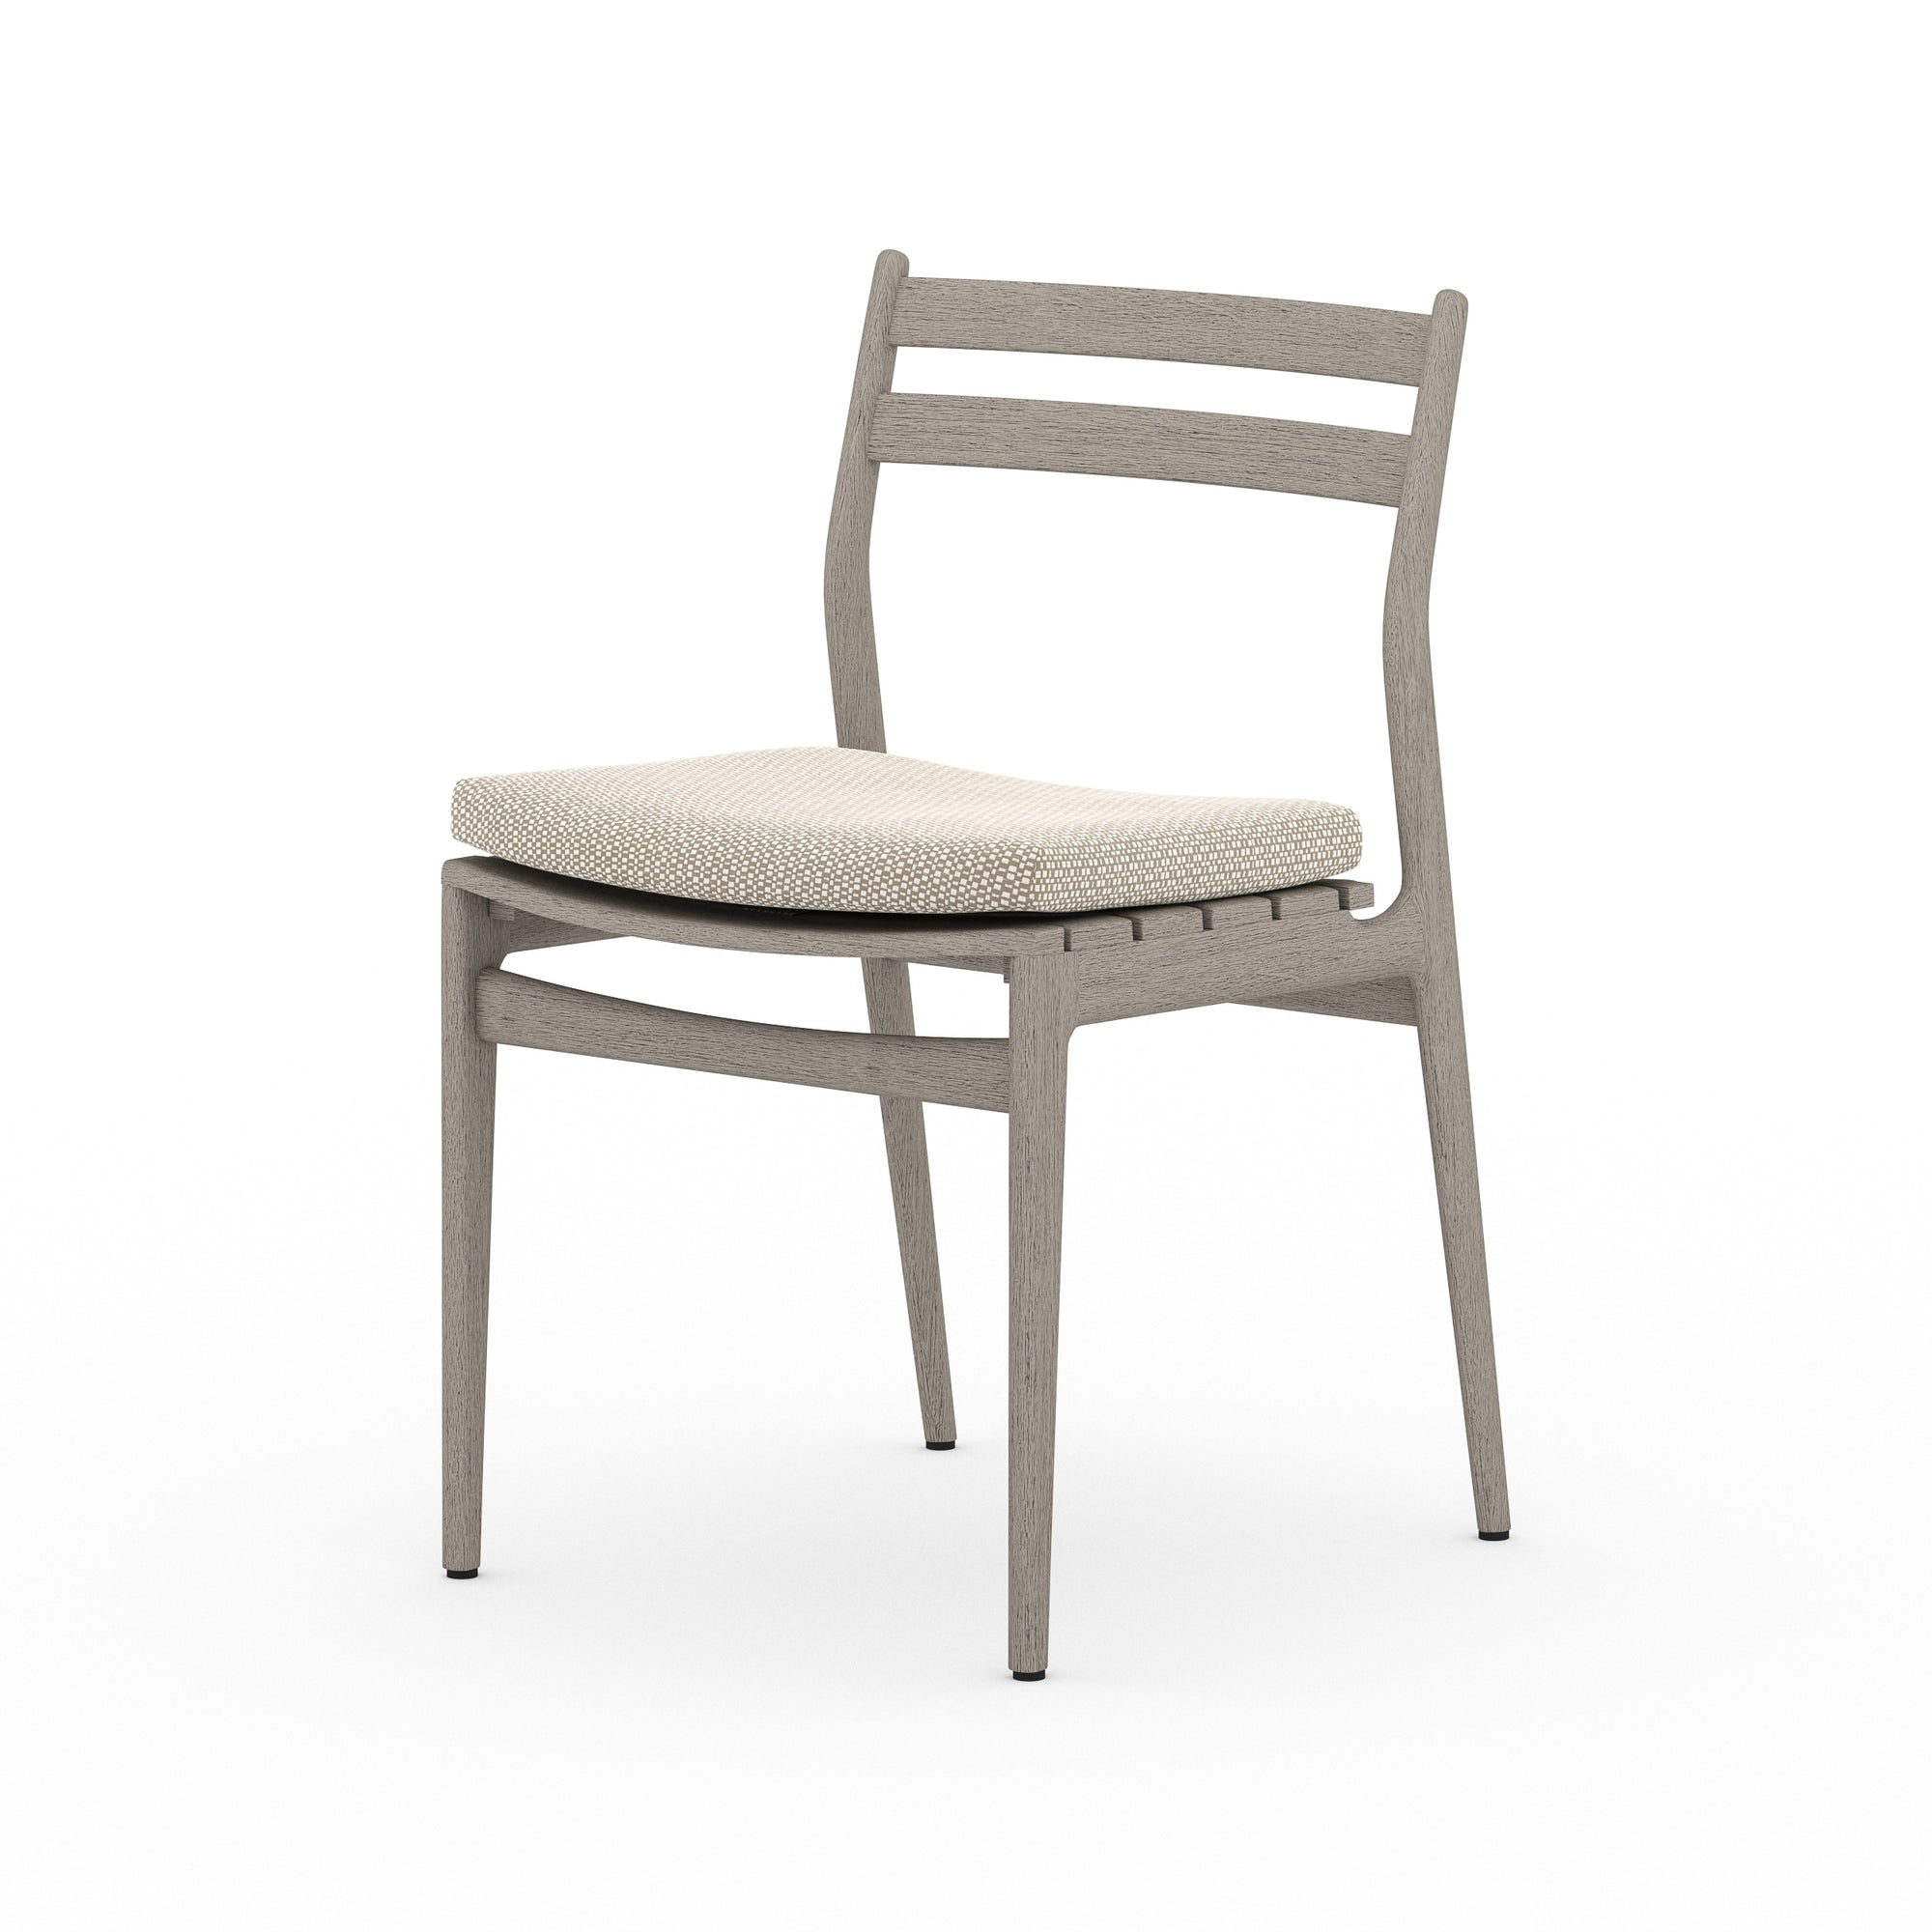 Atherton Outdoor Dining Chair - Grey/Sand